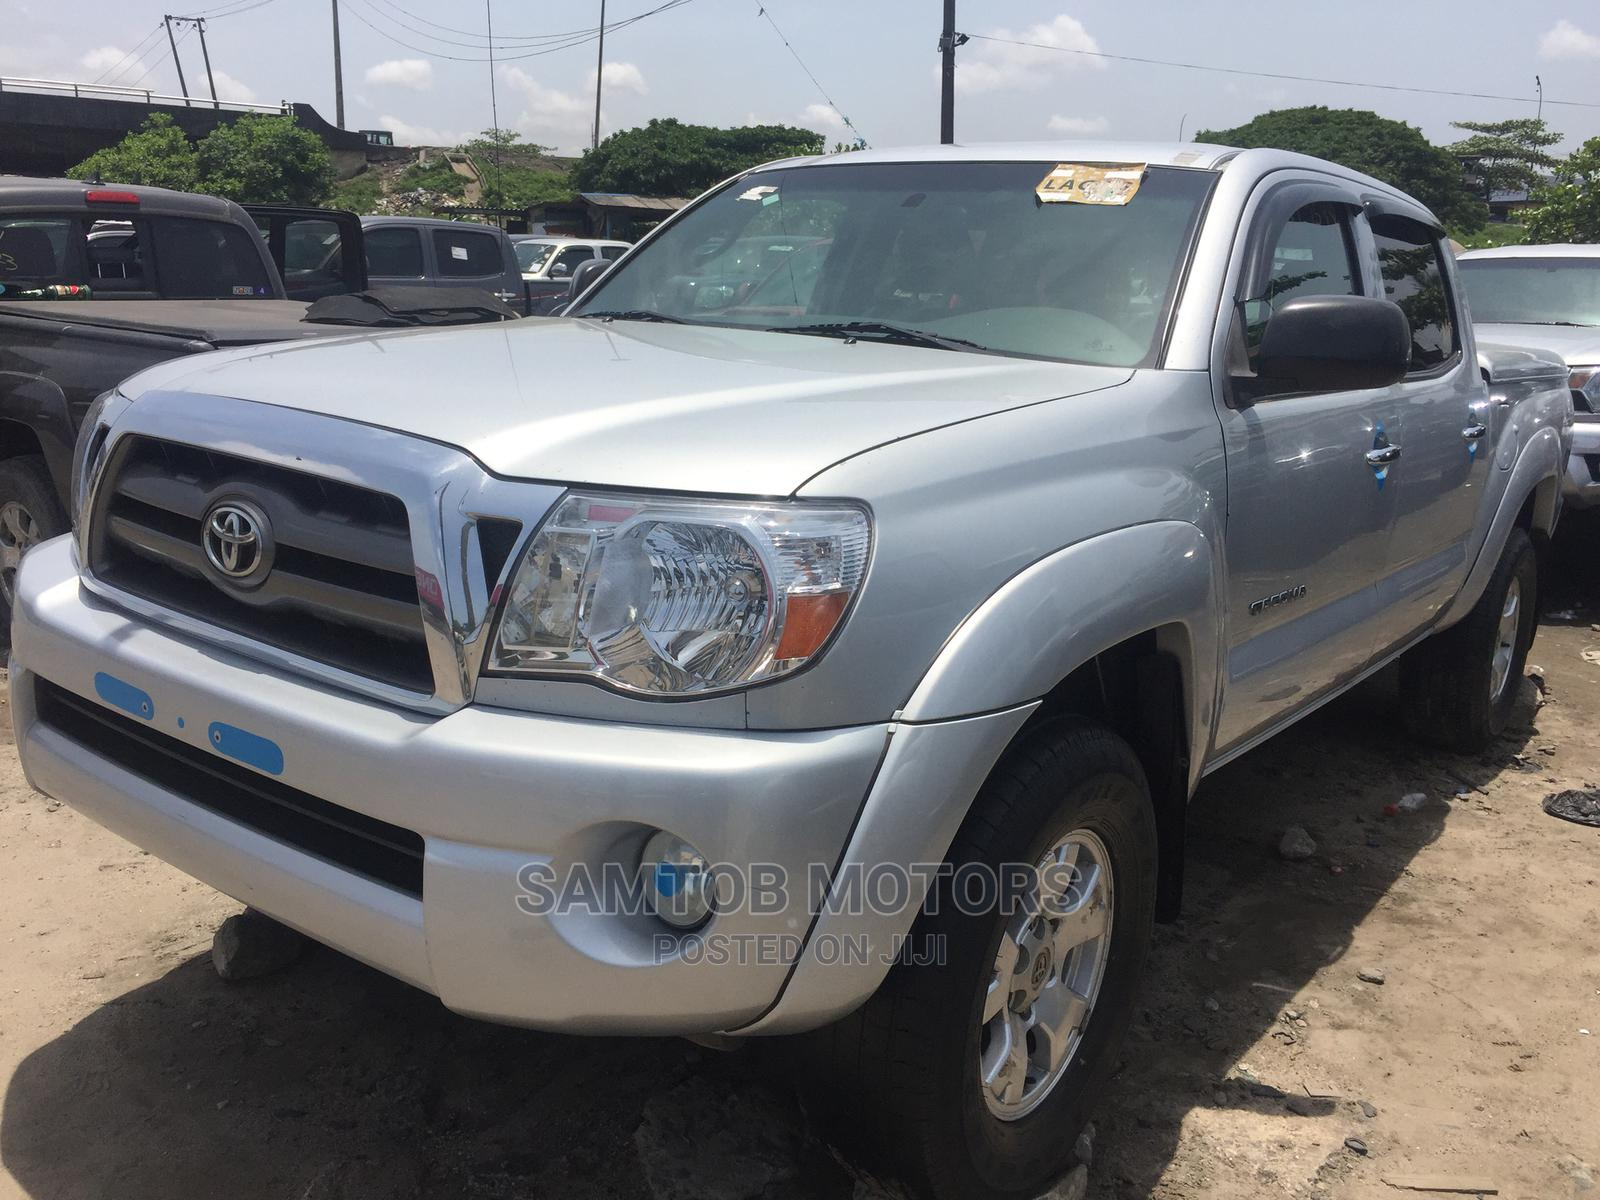 Archive: Toyota Tacoma 2005 Access Cab V6 4WD Silver